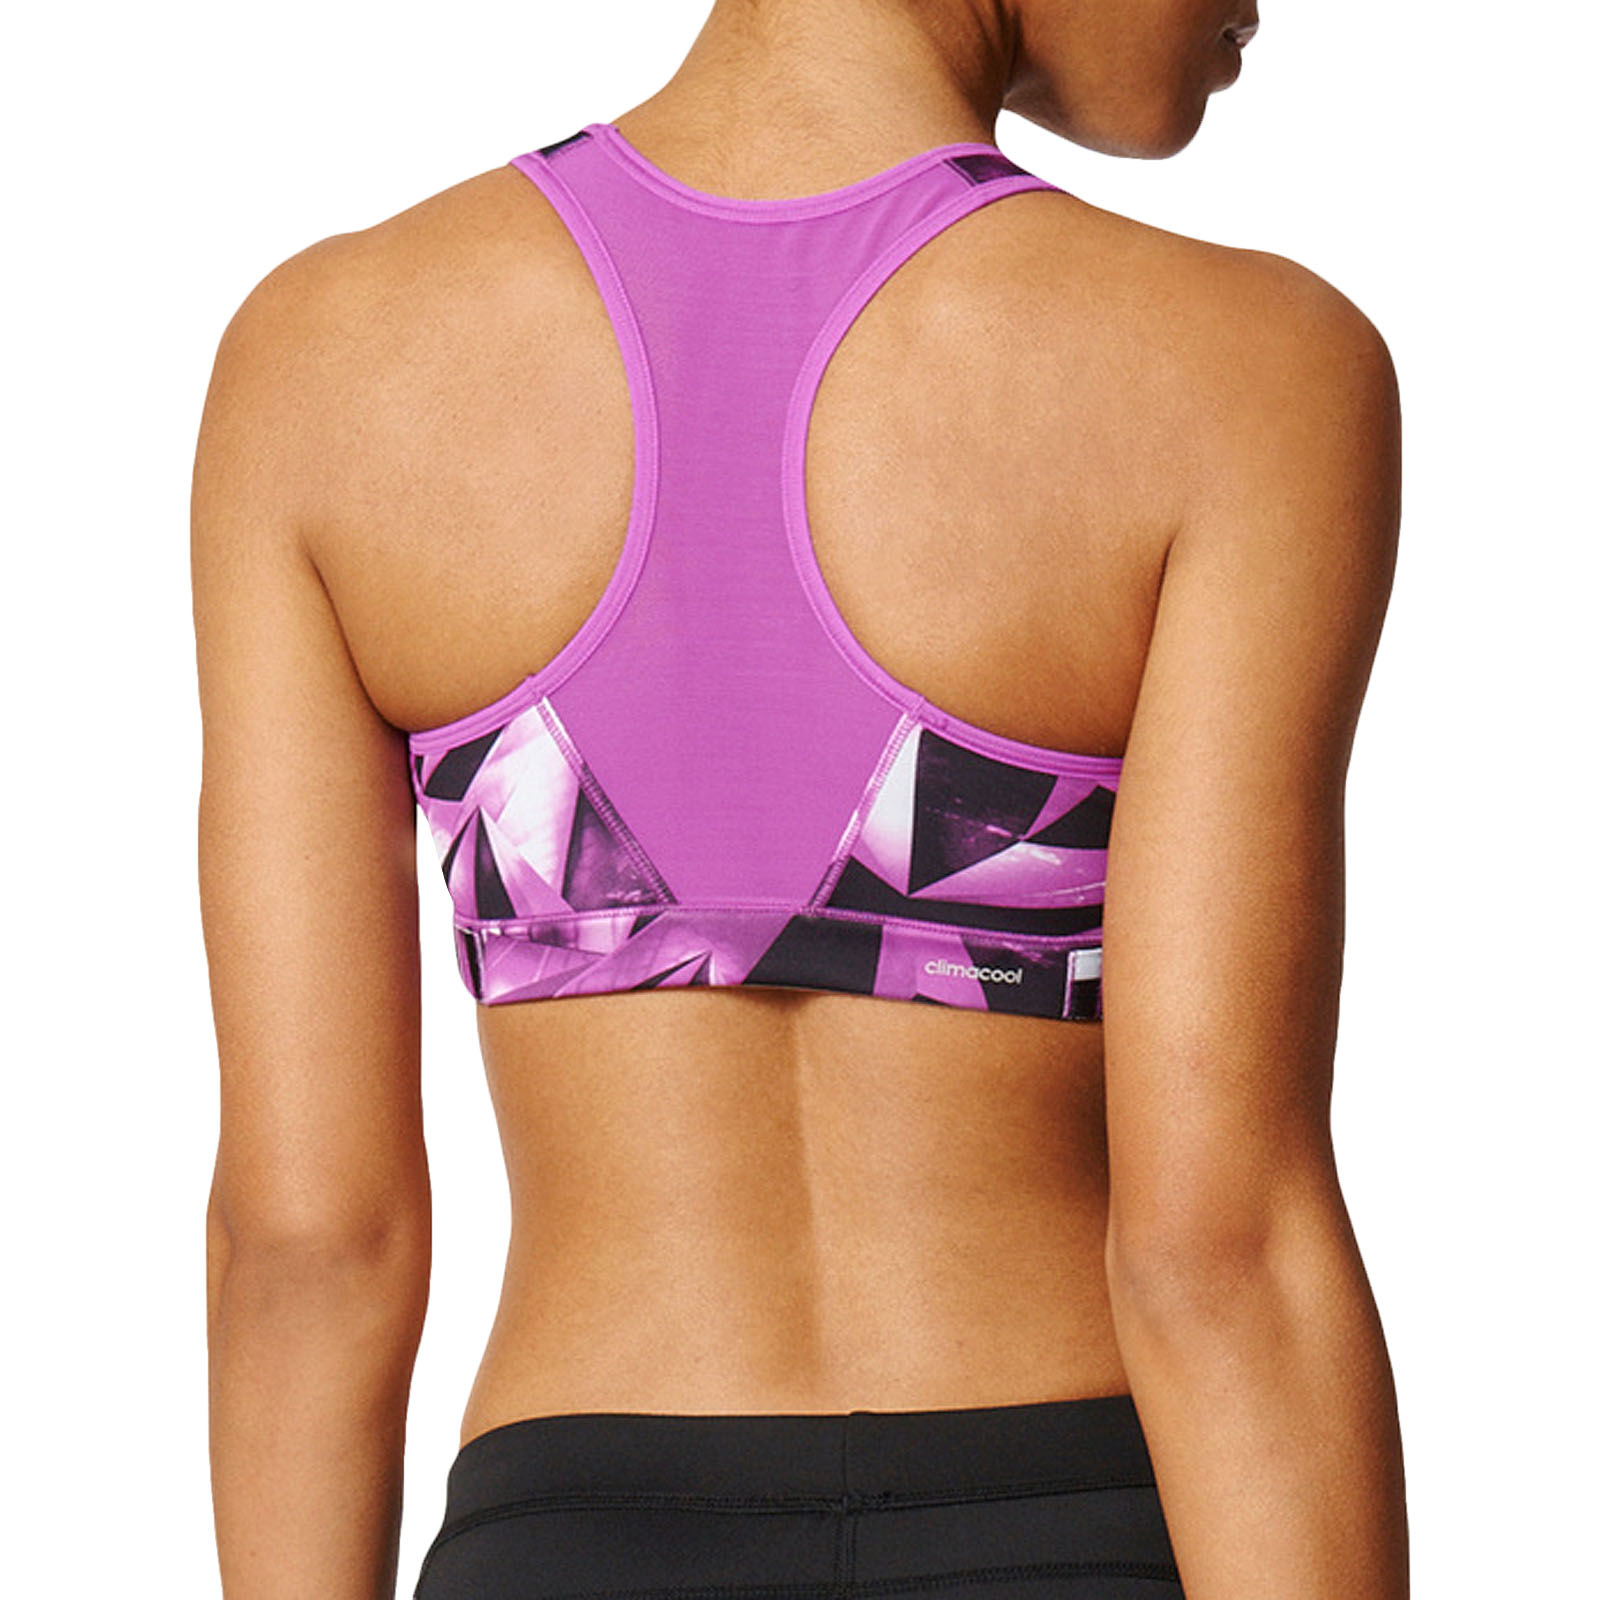 516559ee453c3 adidas Performance Womens Workout Gym Racer Back Printed Crop Top ...